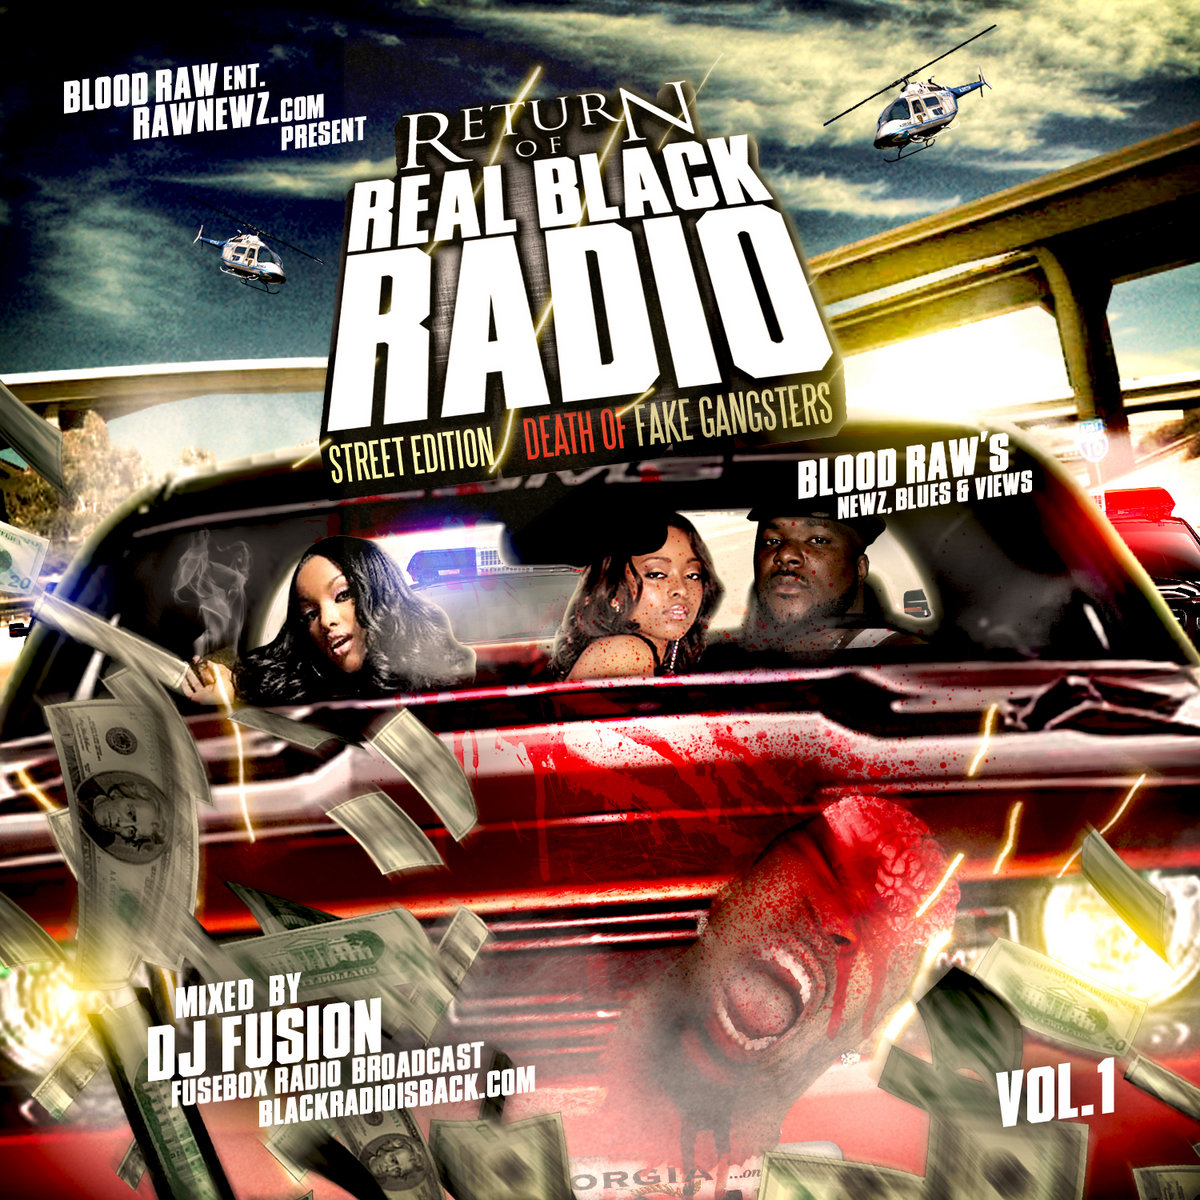 Blood Raw Feat Gator Mighty Mike Mr Bones Salute You Fusebox The Game Fuse Box Com Presents Return Of Real Black Radio Streets Edition Death Fake Gangsters Vol 1 Bloodraws News Blues Views Mixed By Dj Fusion